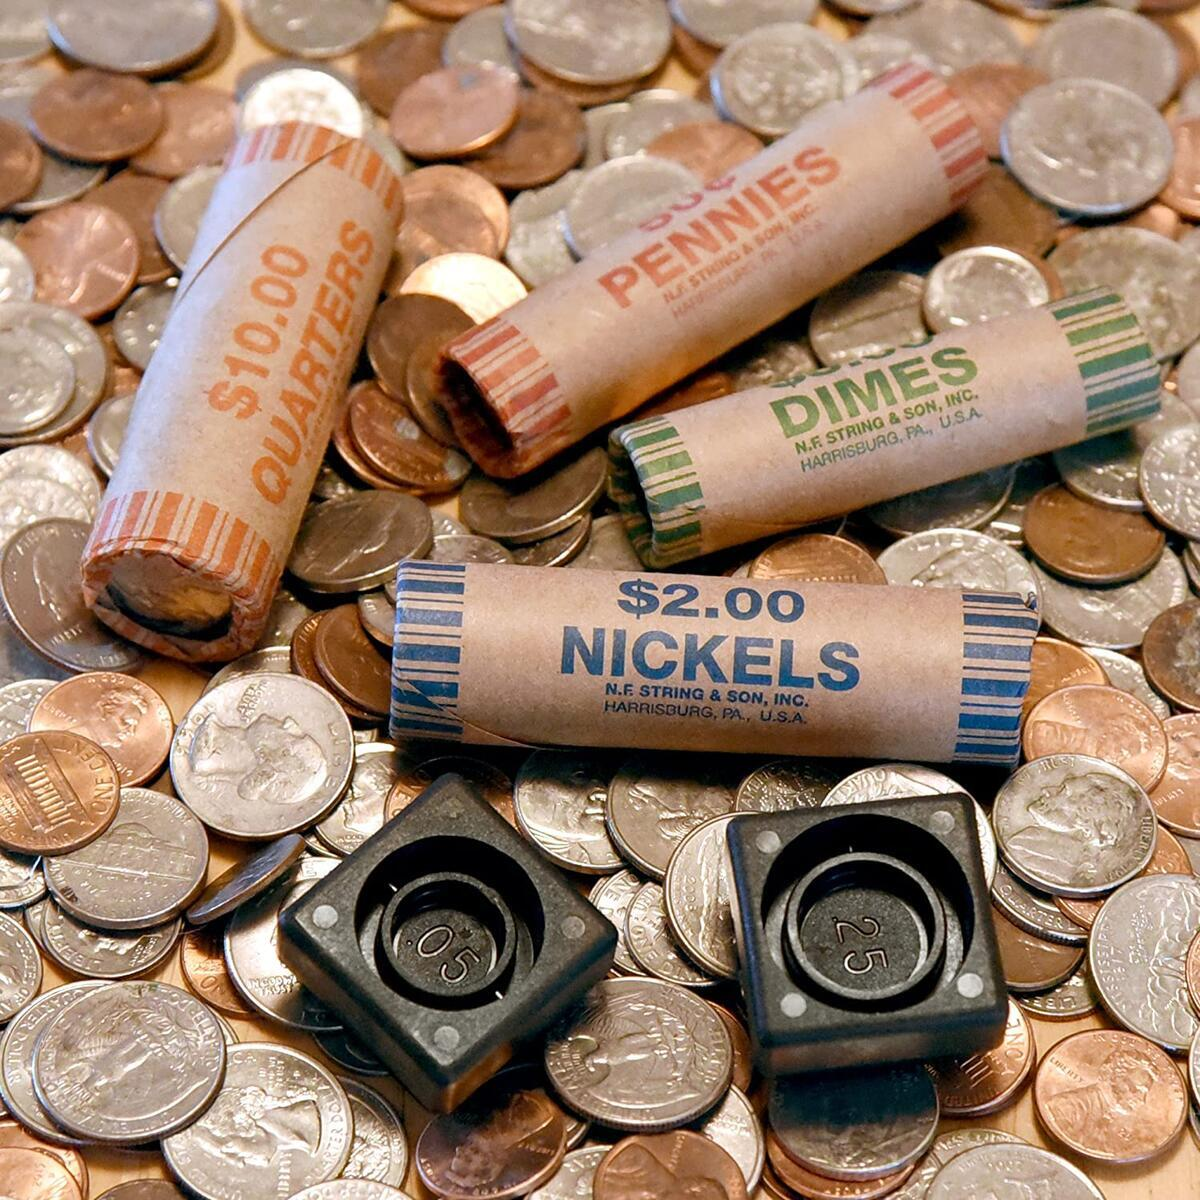 150 Coin Wrappers & Twist N Crimp Wrapper Sealer Made in USA - Durable Preformed Paper Tubes - Assorted Sizes - 60 Quarters, 30 Pennies, 30 Nickels and 30 Dimes